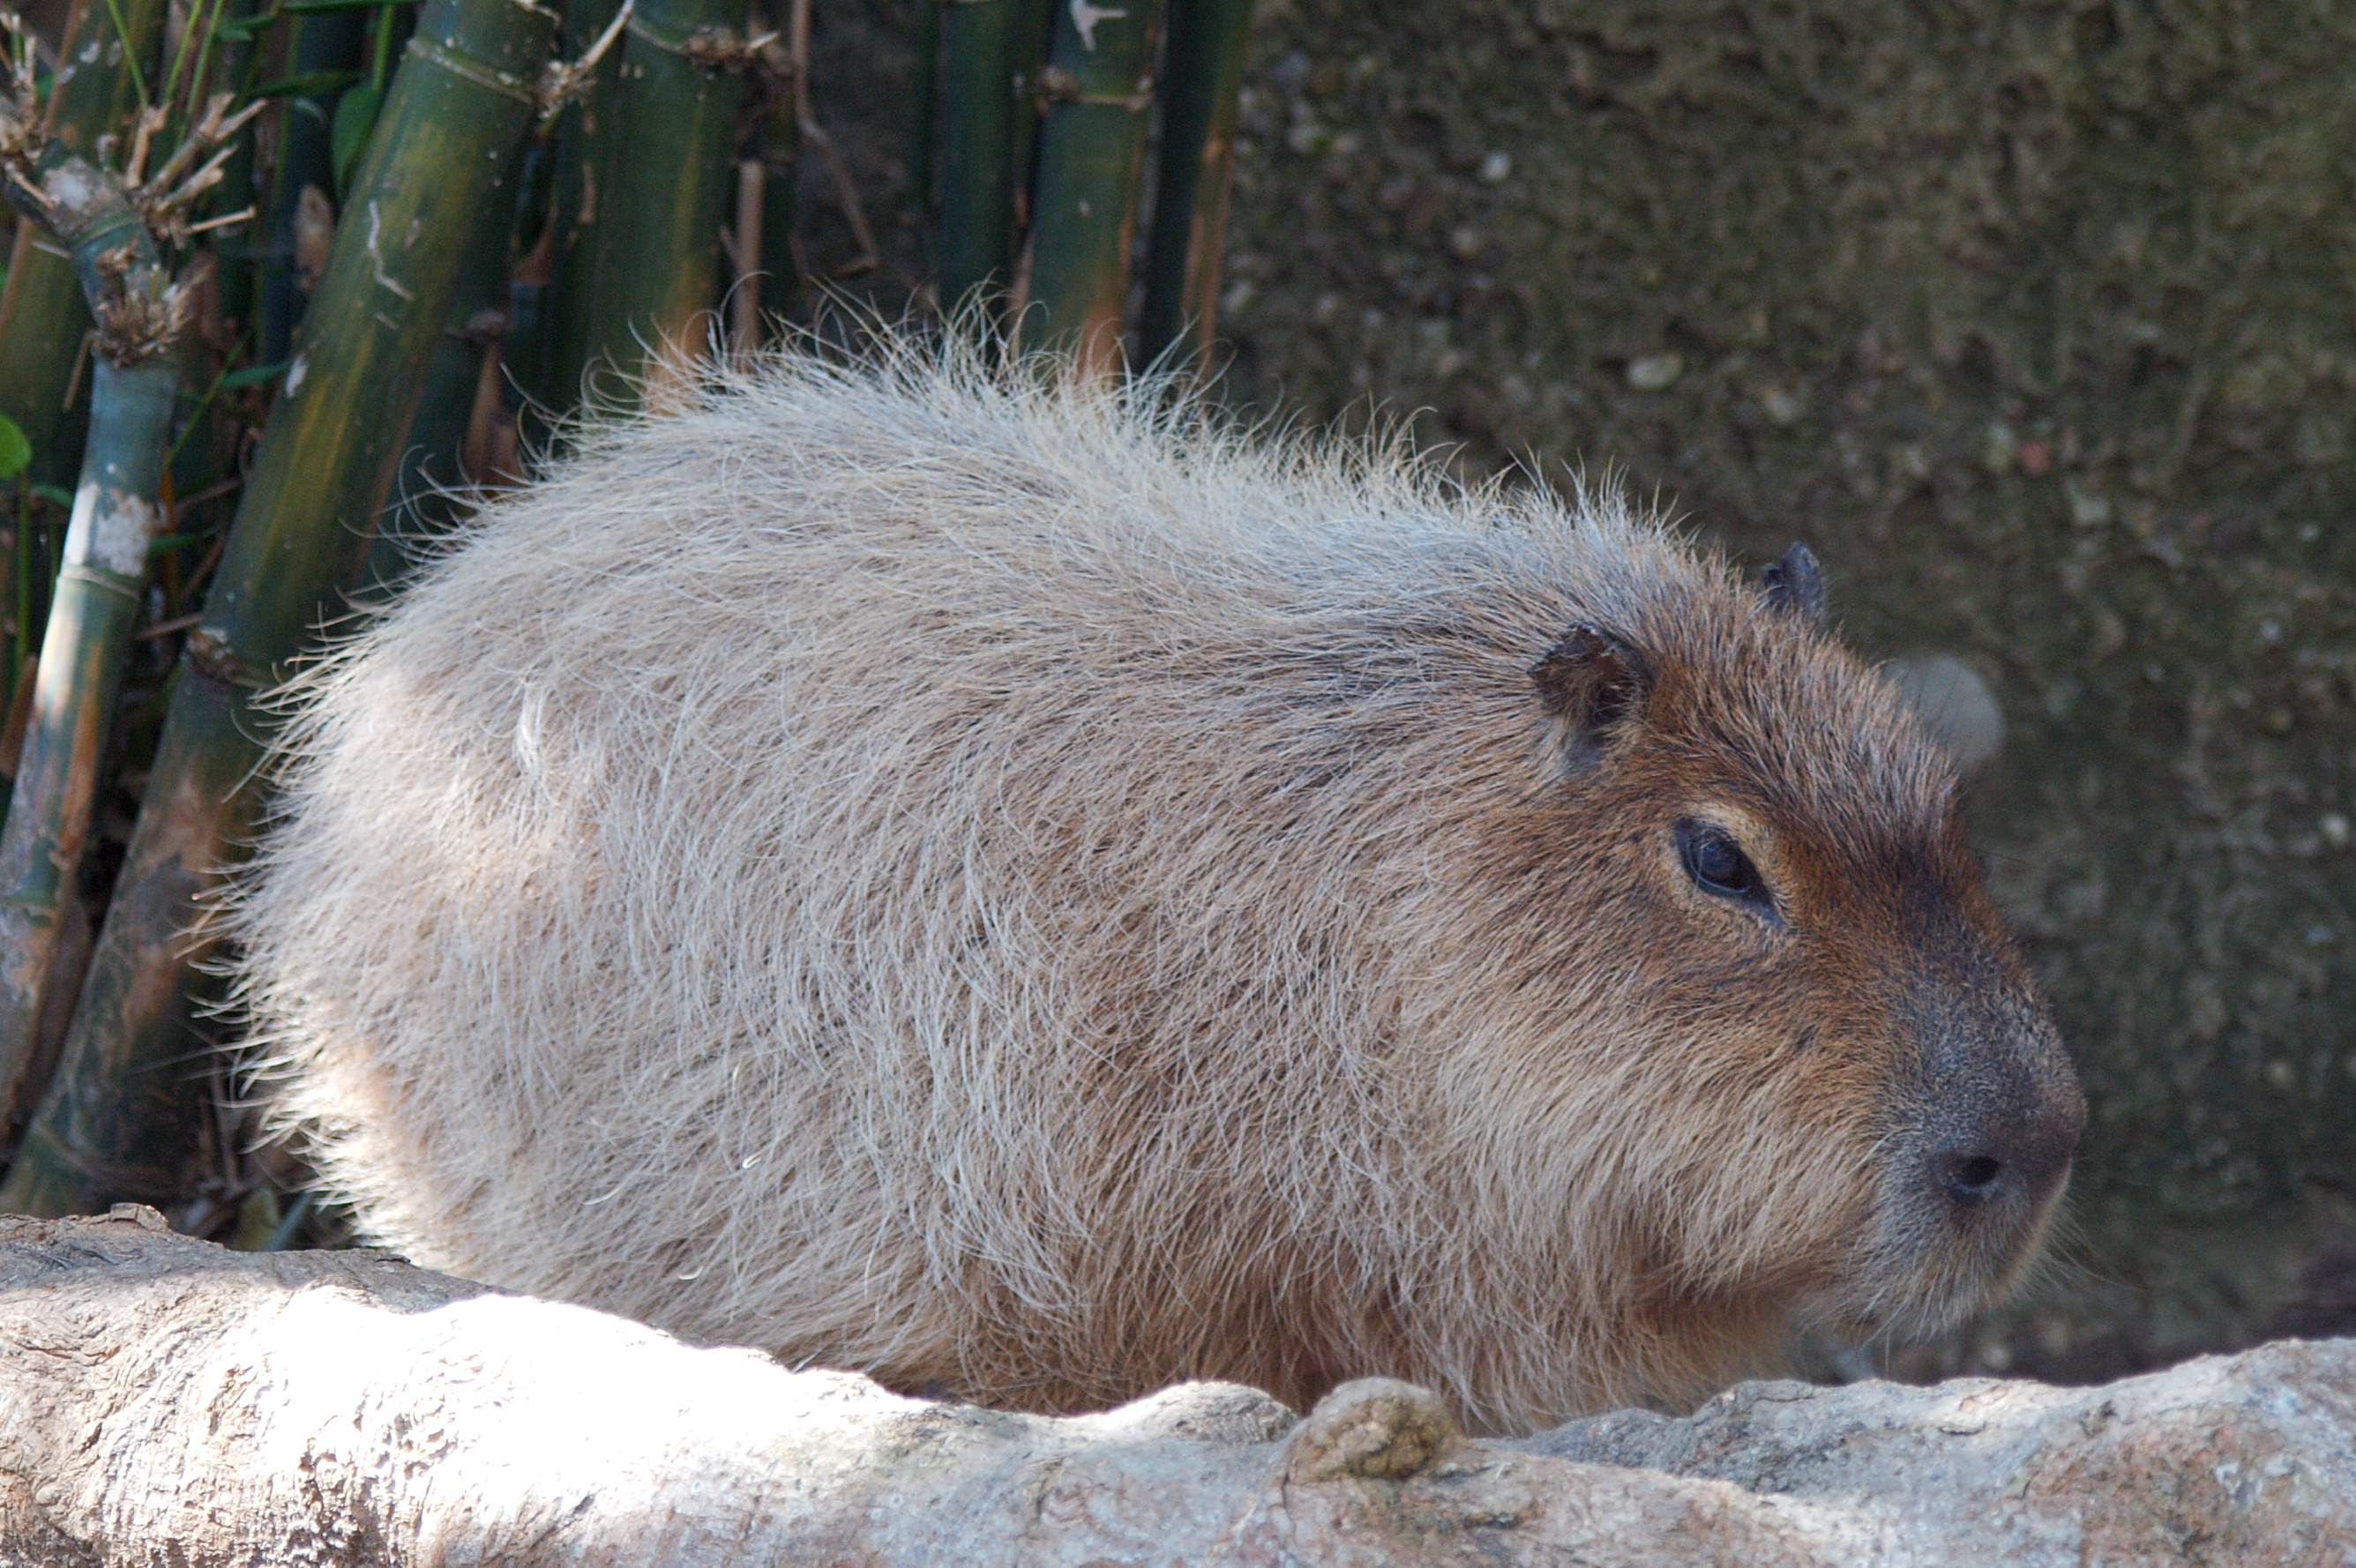 File:Capybara 5084.jpg - Wikimedia Commons